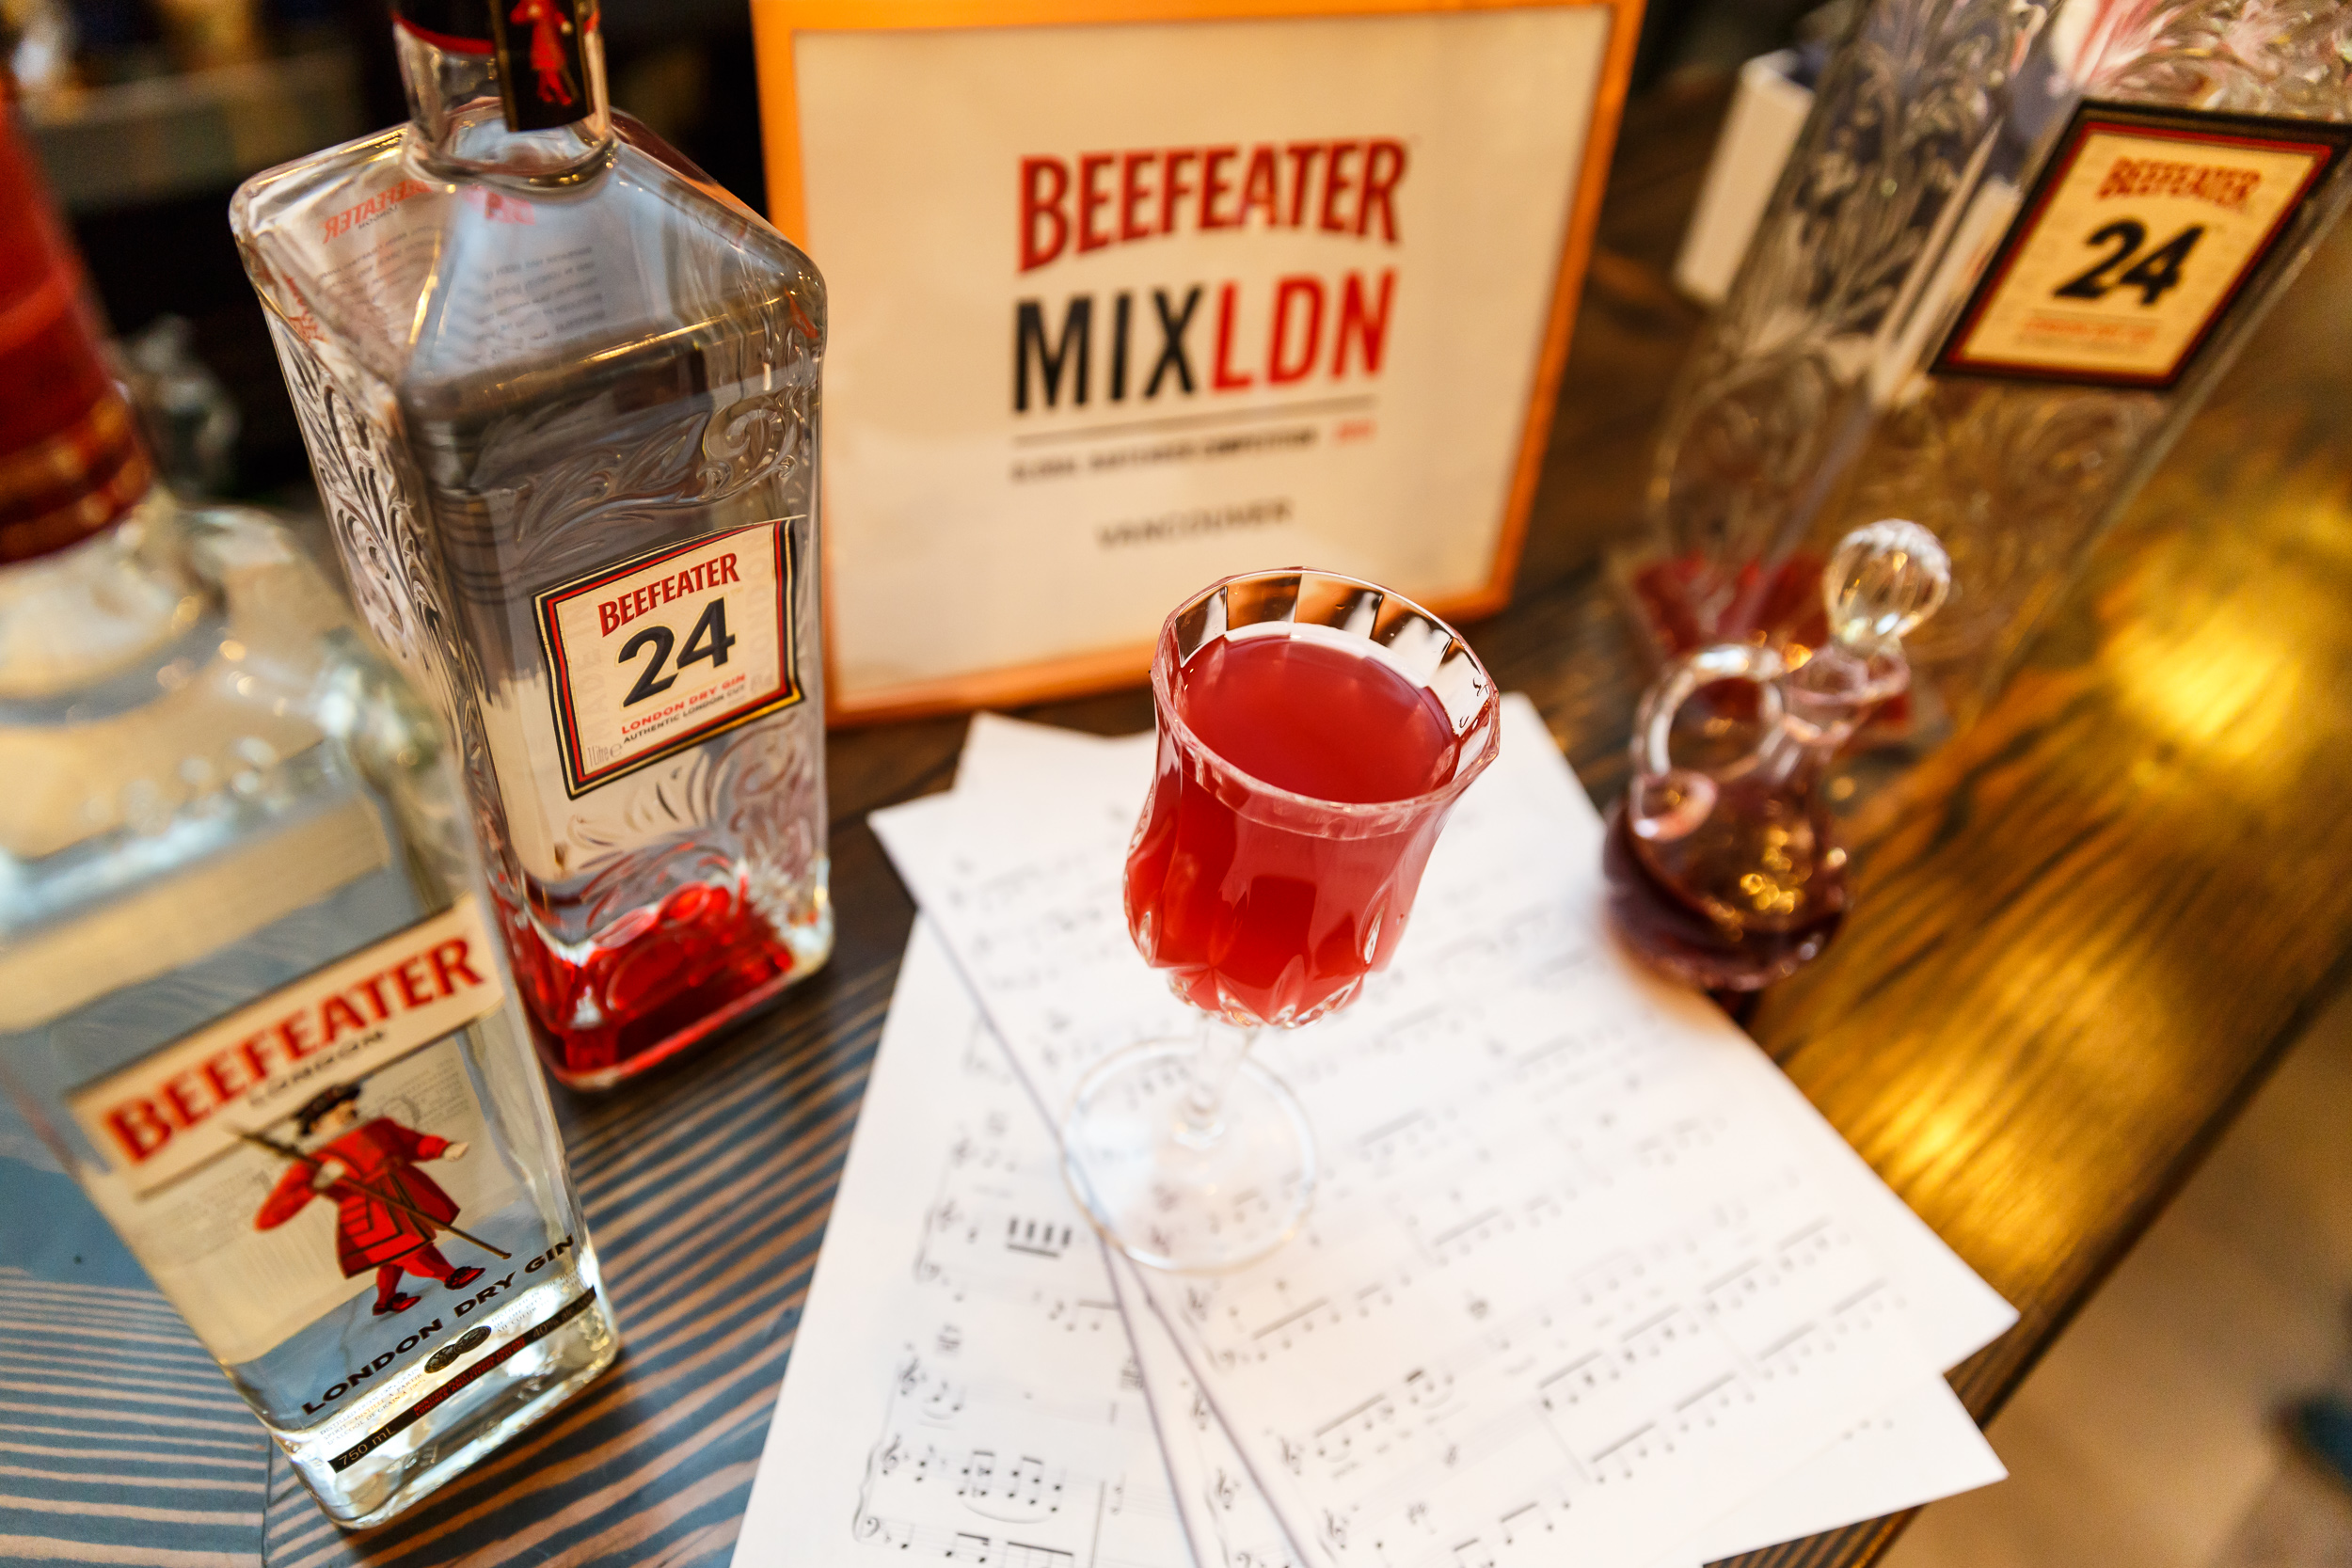 Beefeater-MIXLDN-photo-24.jpg